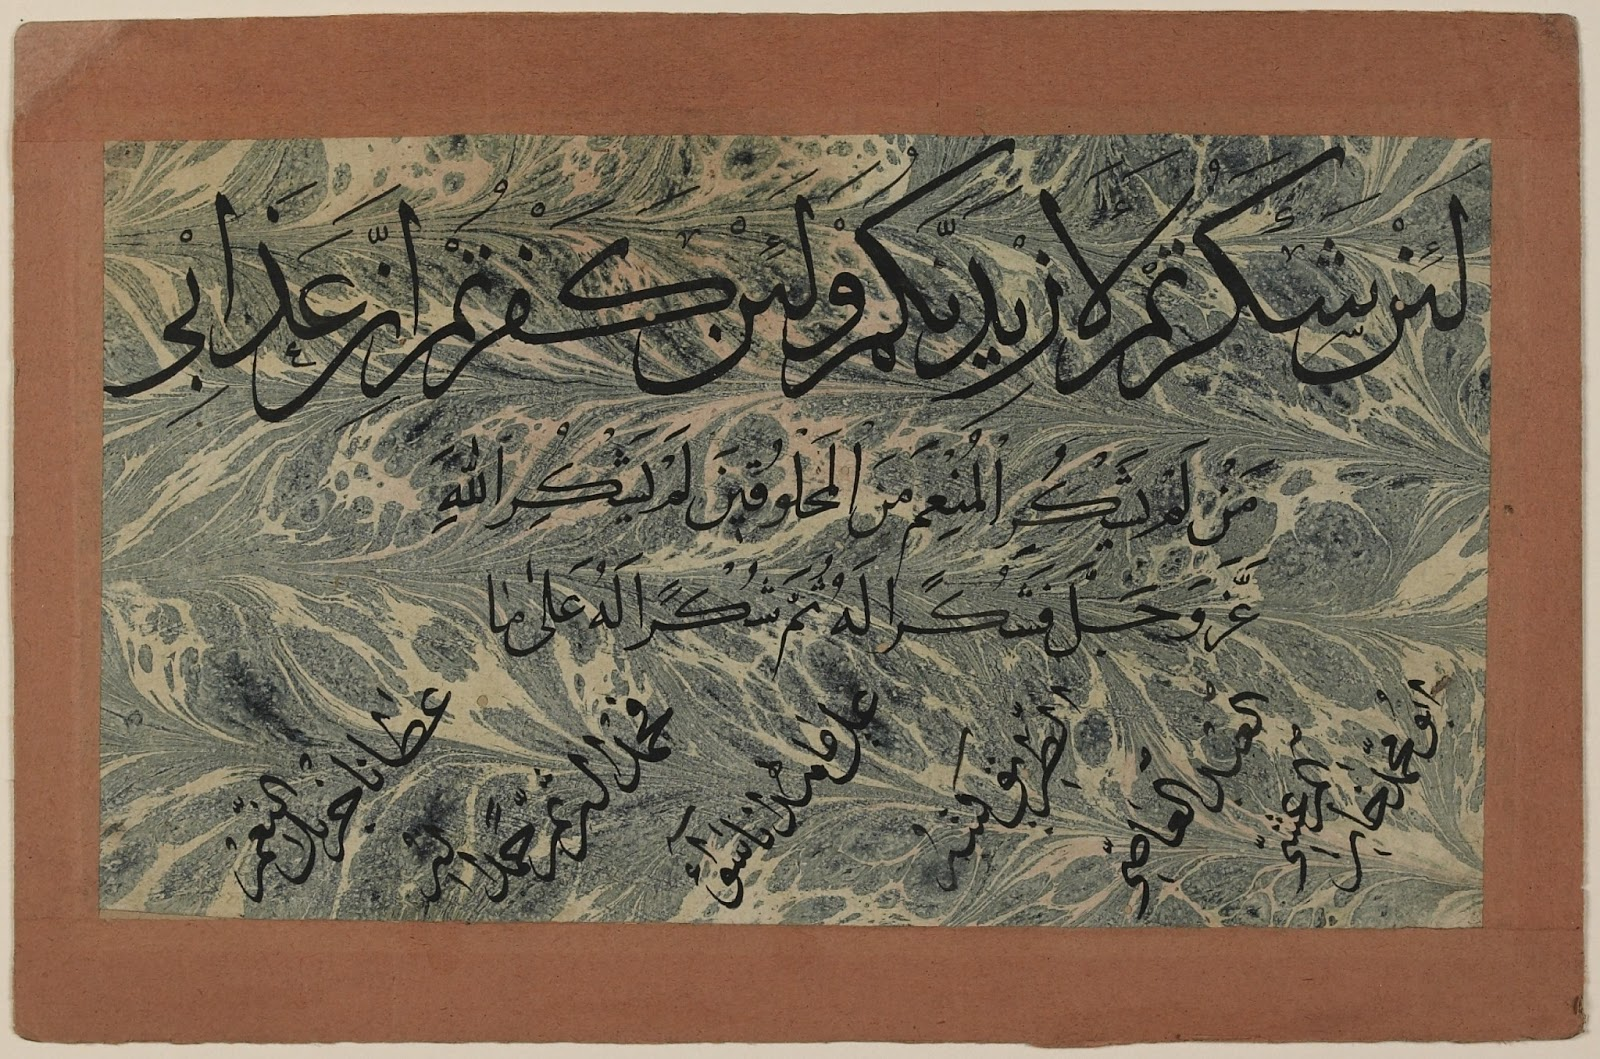 http://3.bp.blogspot.com/-L0RUGBSIpSs/USu7pEF4VFI/AAAAAAAAAyo/g4kO_xJKQ8k/s1600/a+verse+from+the+Qur\'an+14+7,+typical+of+compositions+written+marbled+paper+produced+after+the+16th+century+C.E.jpg